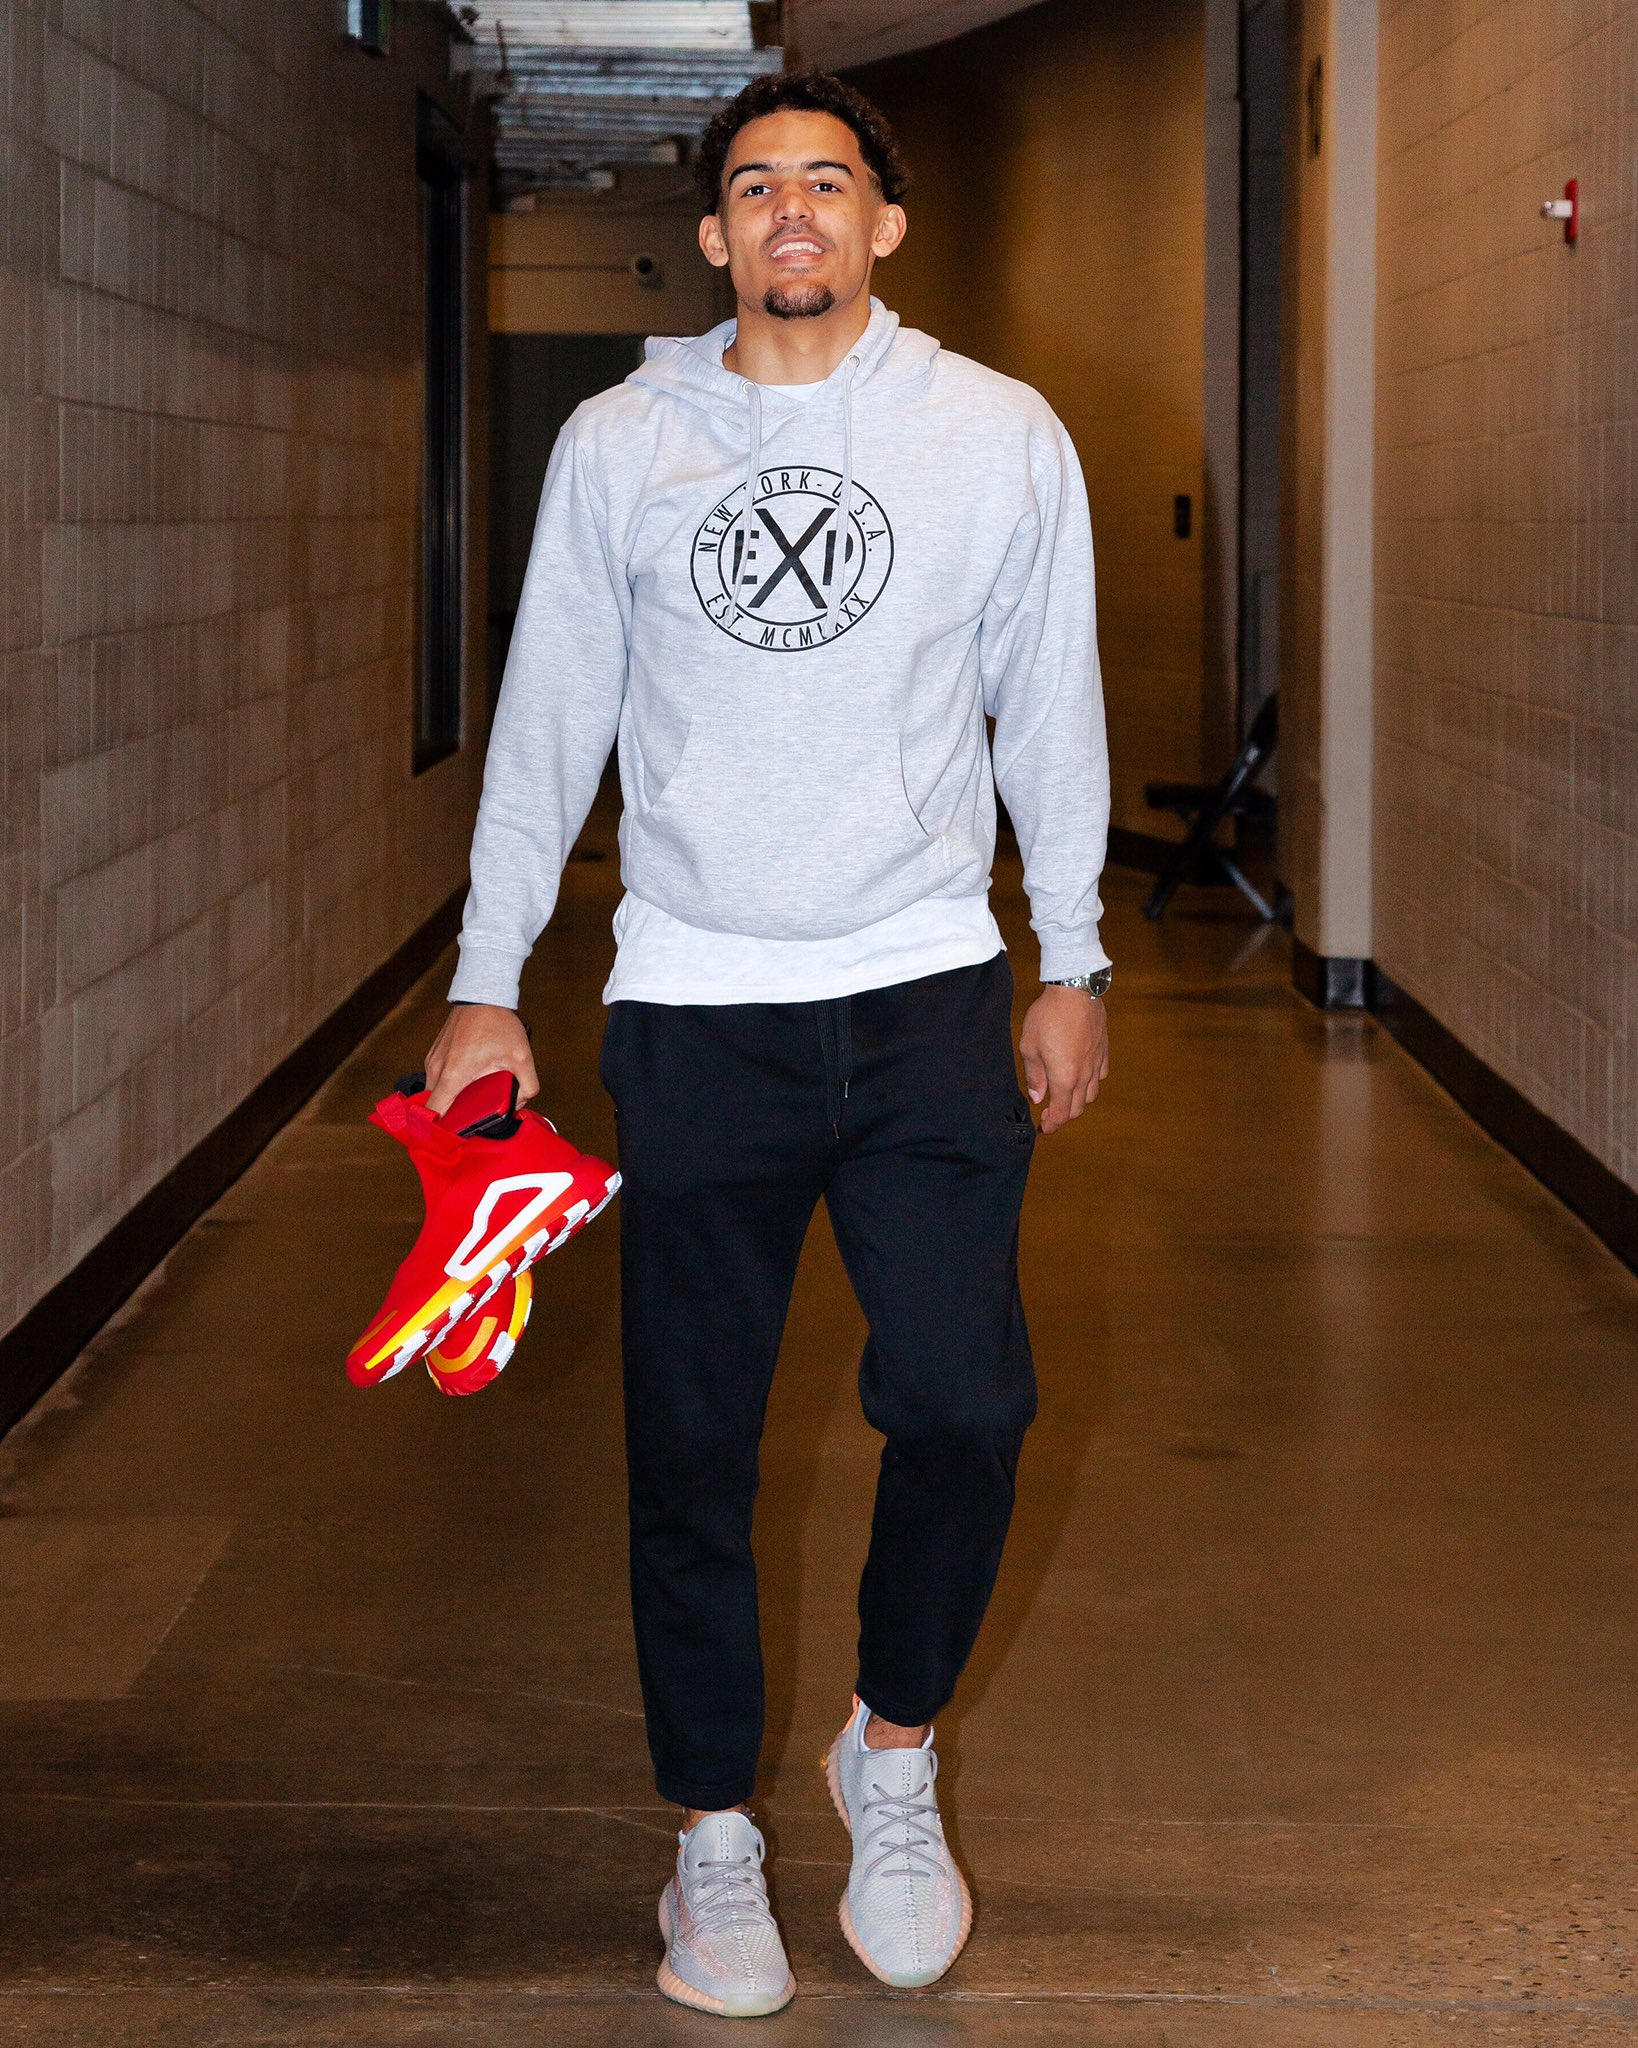 Trae Young bringing the Adidas N3XT L3V3L - Atlanta Hawks vs. Portland Trail Blazers | March 29, 201926 Points7 Assists9 Rebounds1 Steals10-25 Shooting